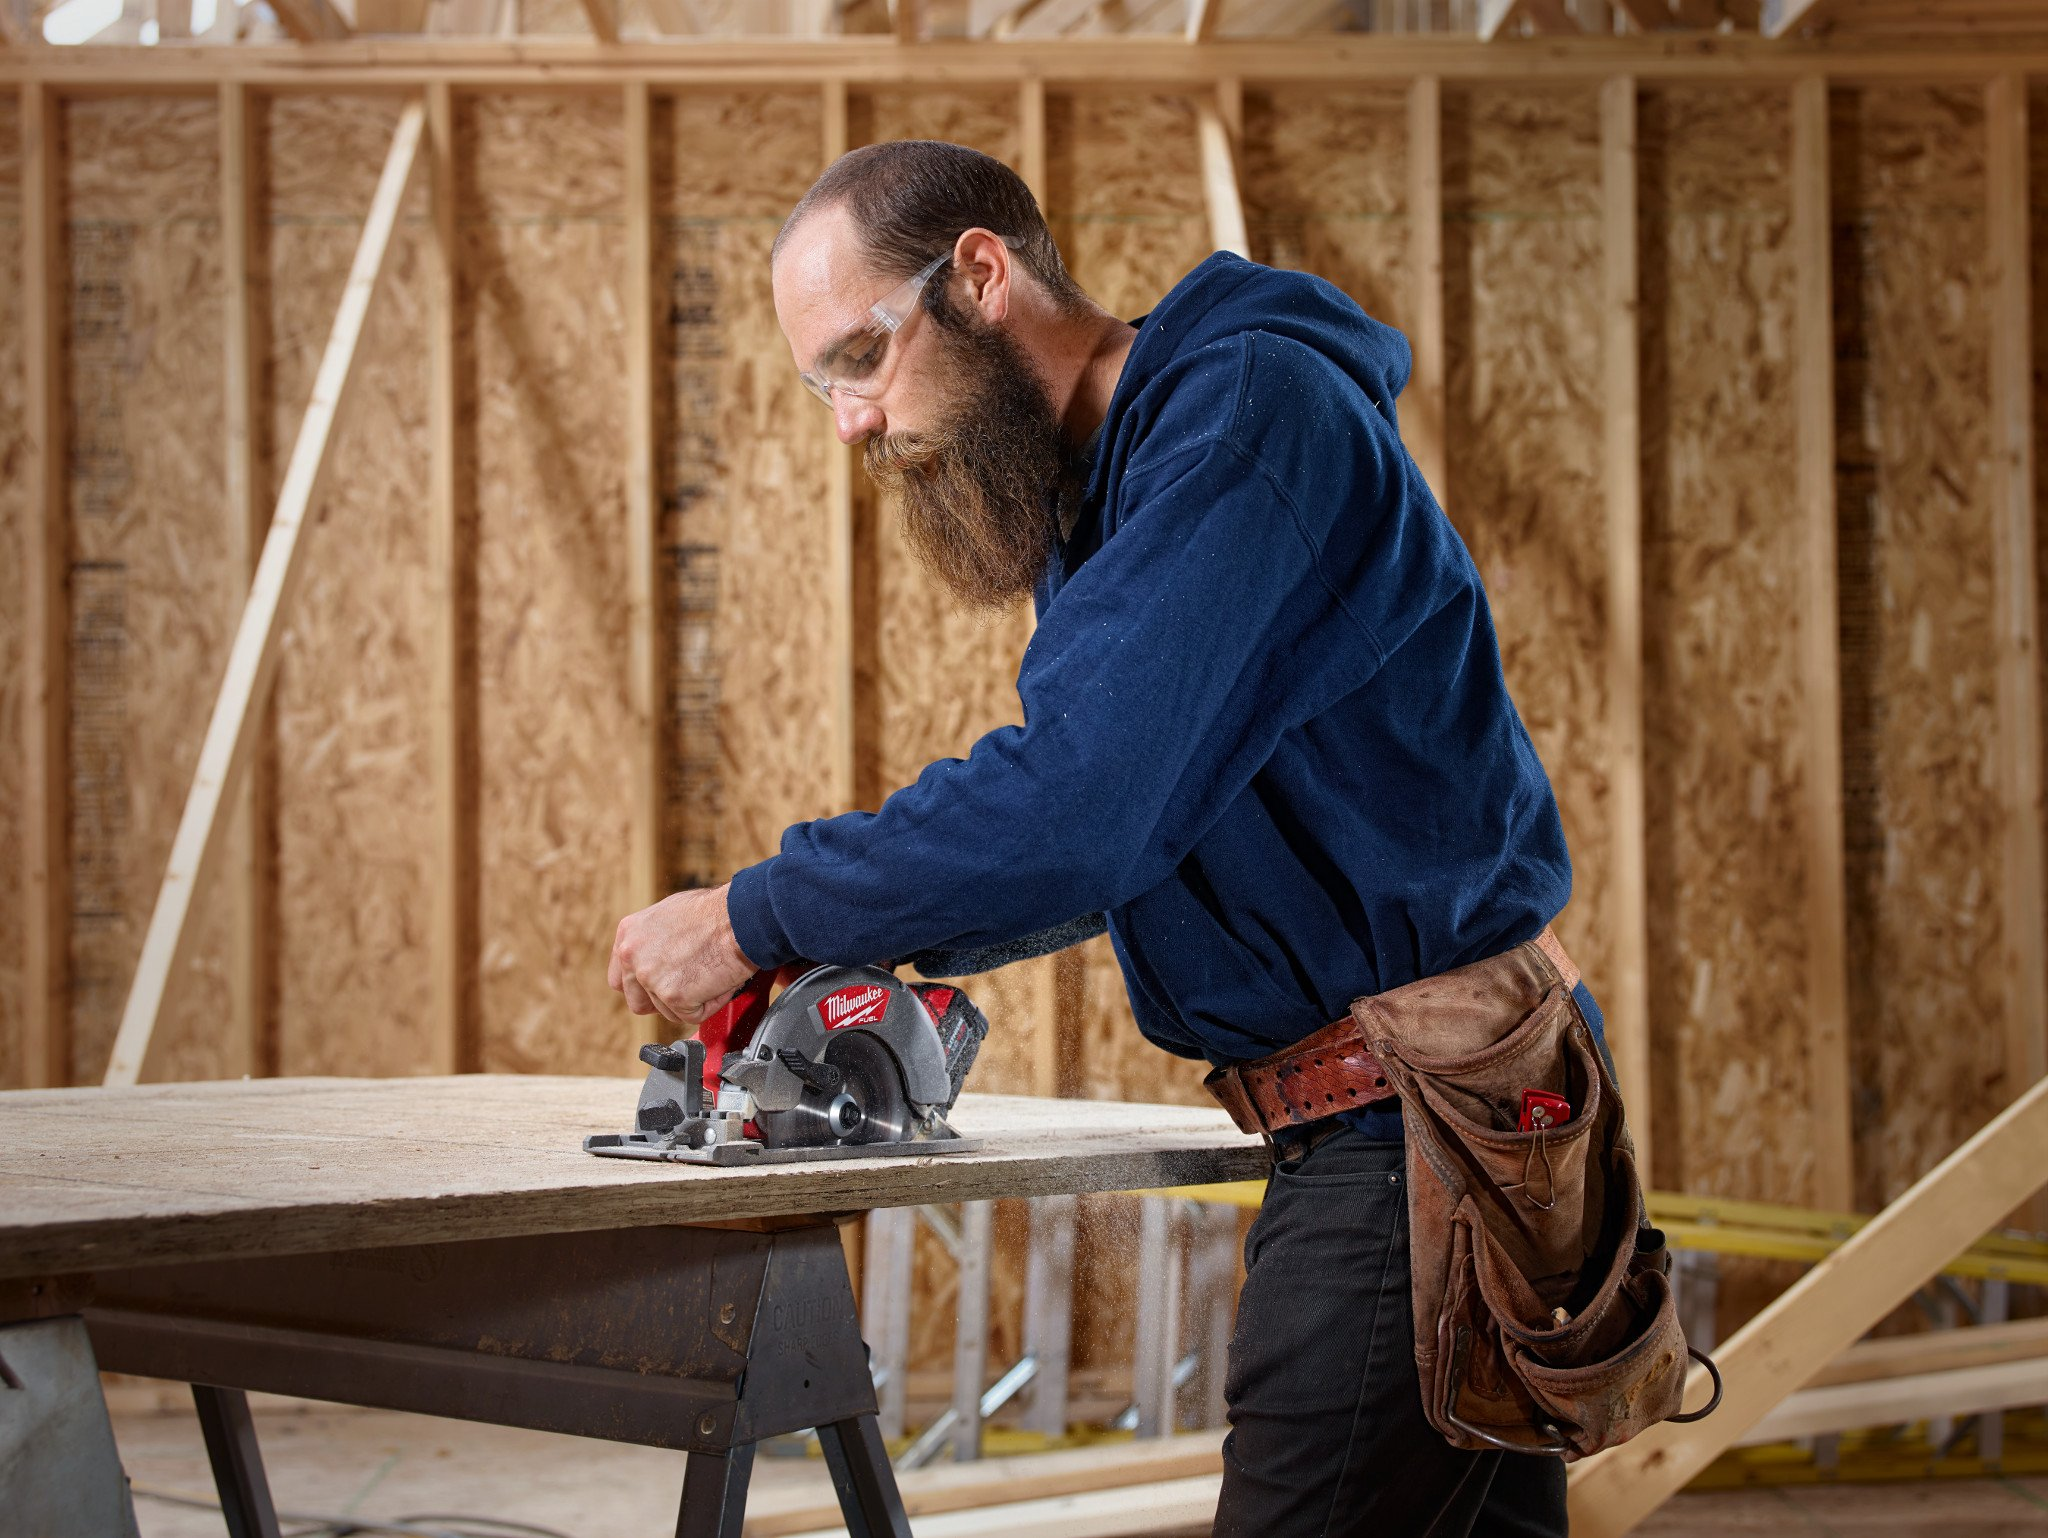 A general contractor uses a cordless Milwaukee circular saw to cut down plywood